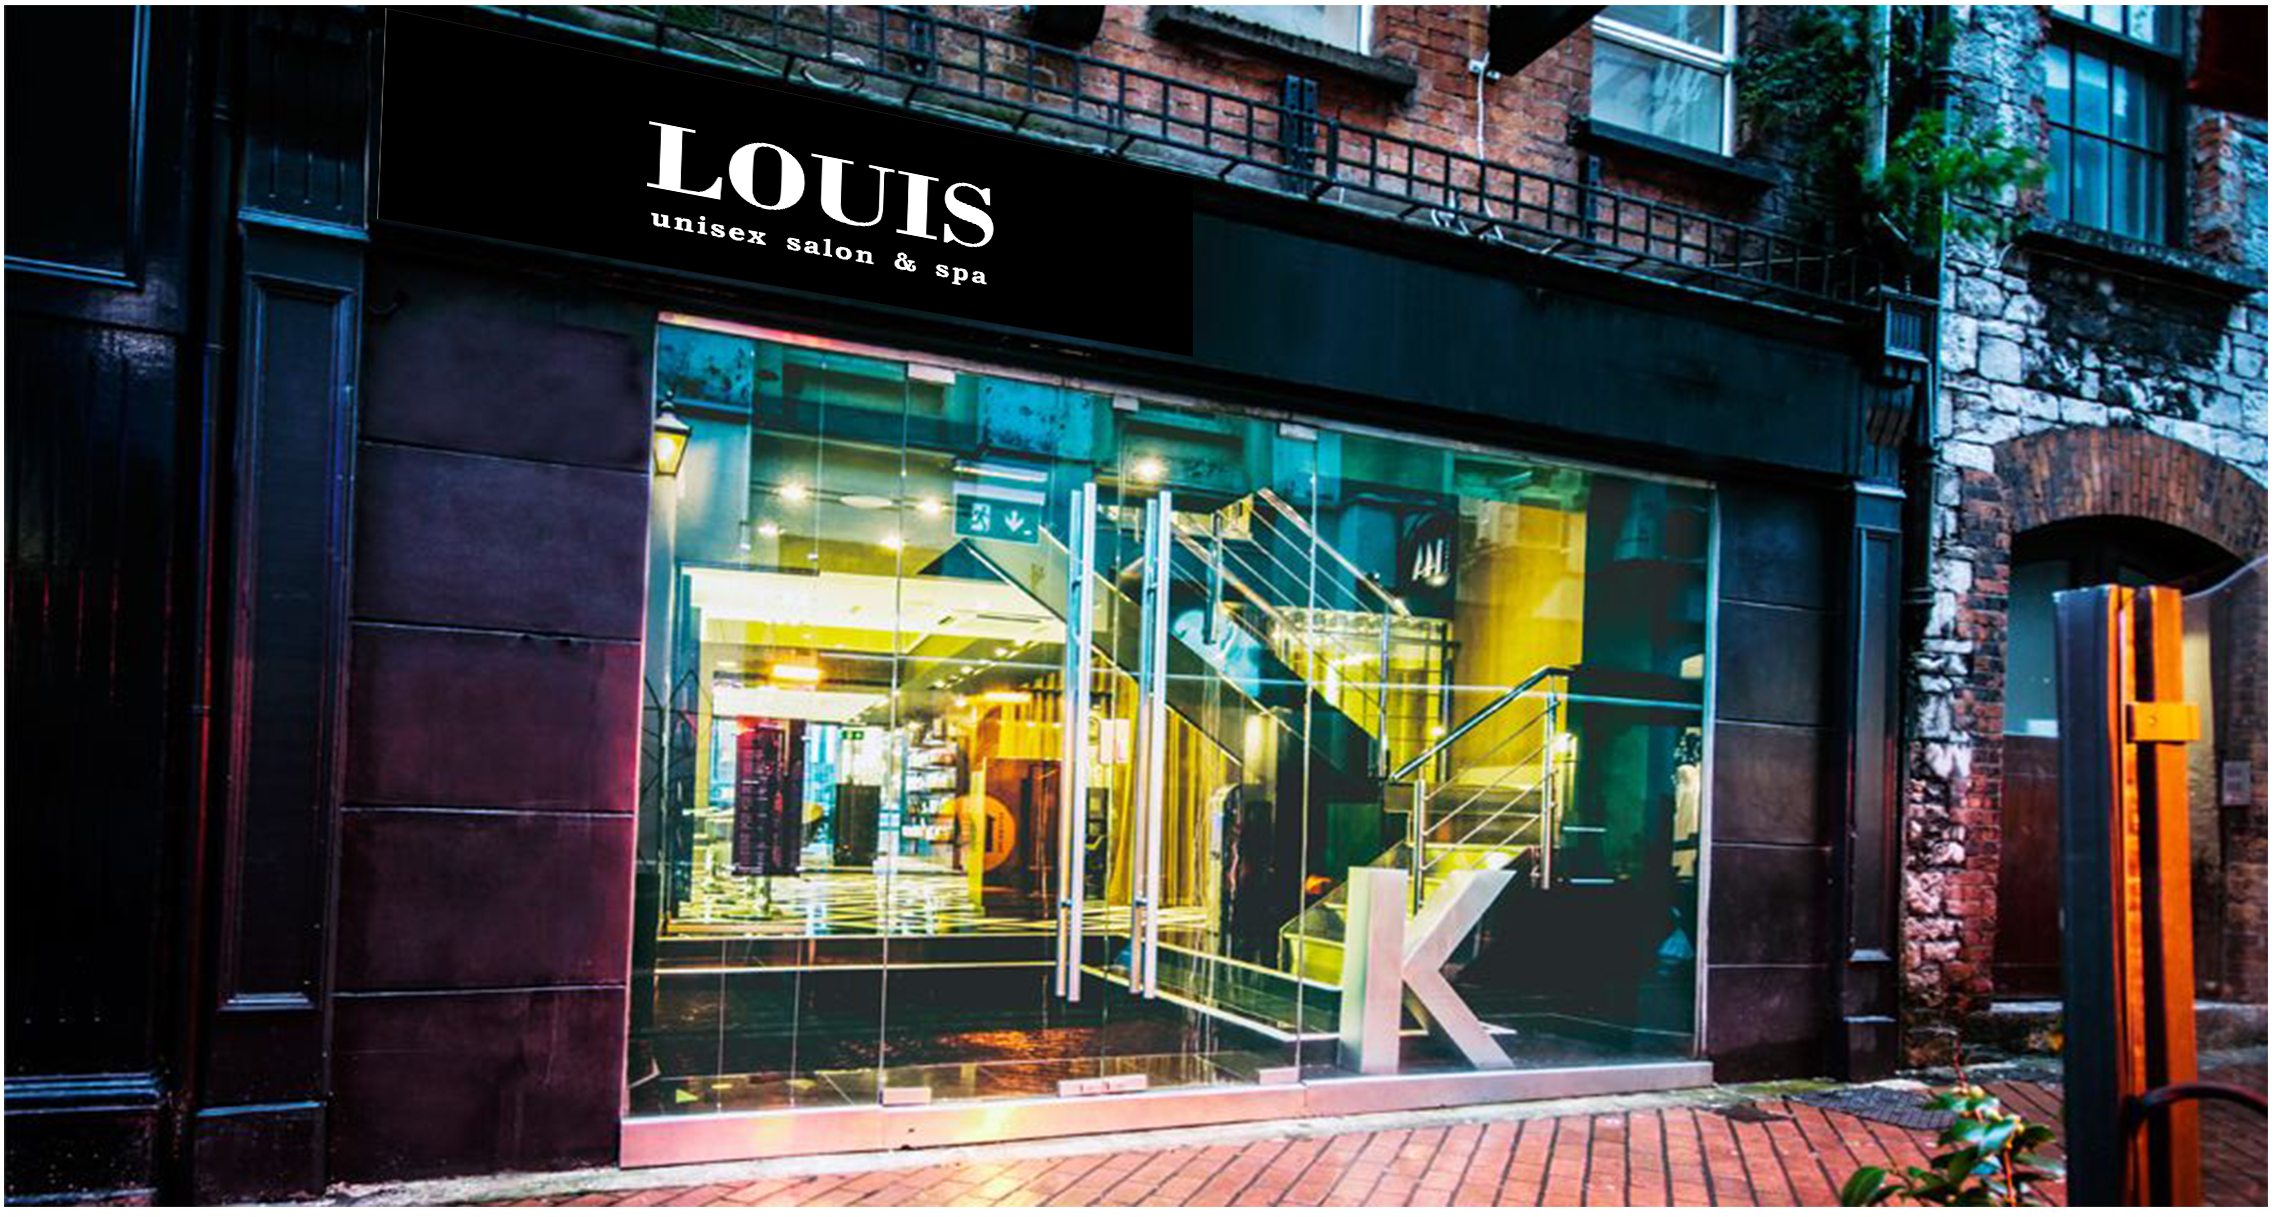 louis+unisex+salon+dubai 10